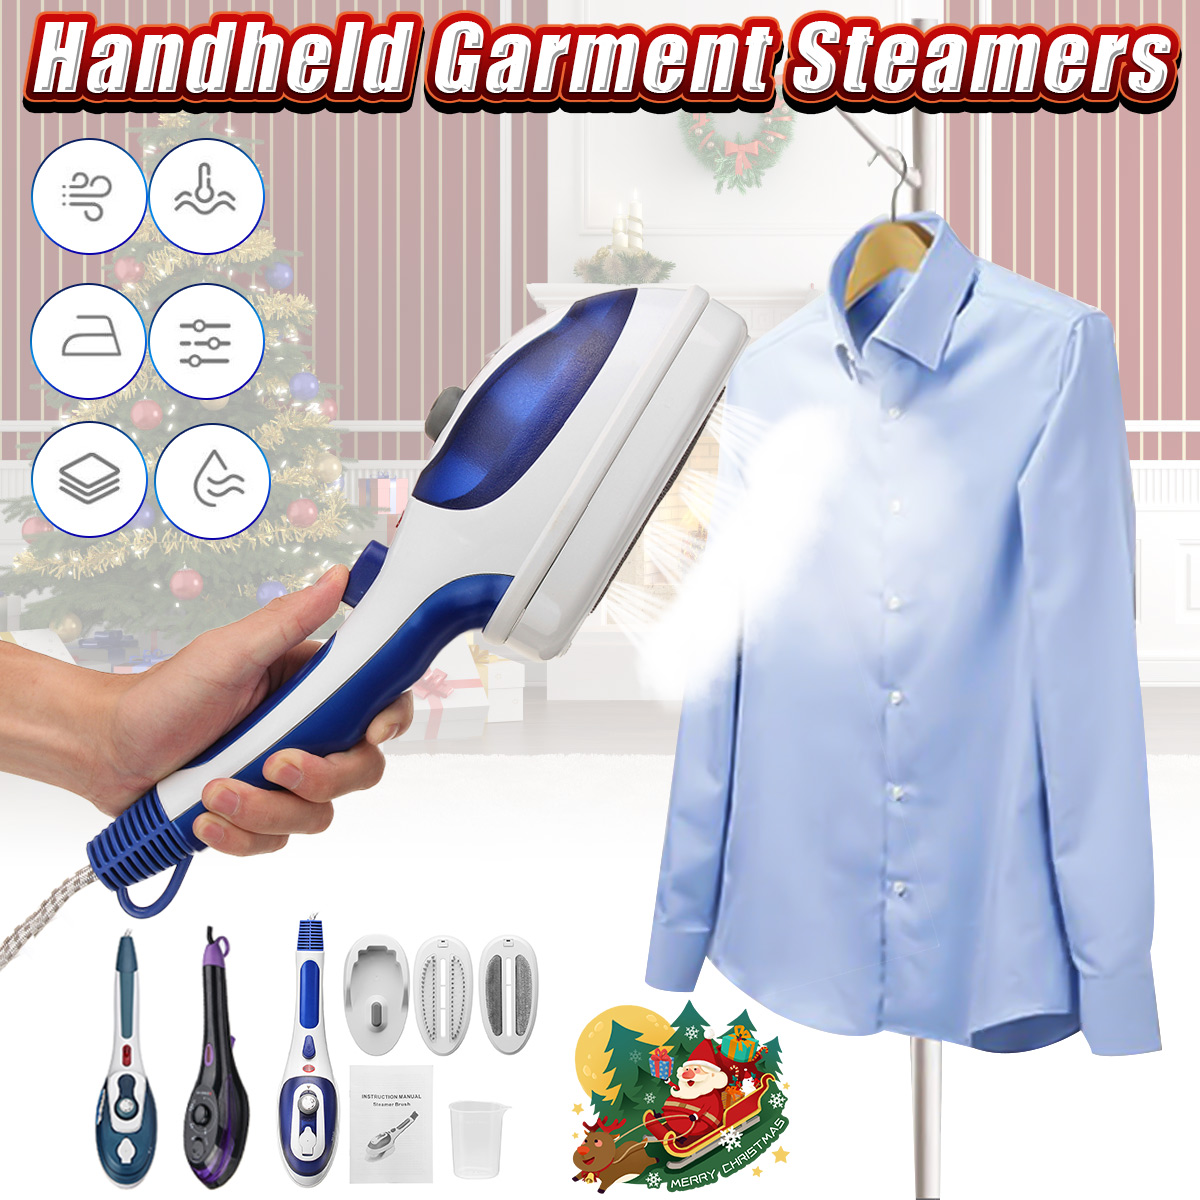 220V 800W Portable Handheld Garment Steamers Mini Electric Steam Iron Machine For Home Travelling